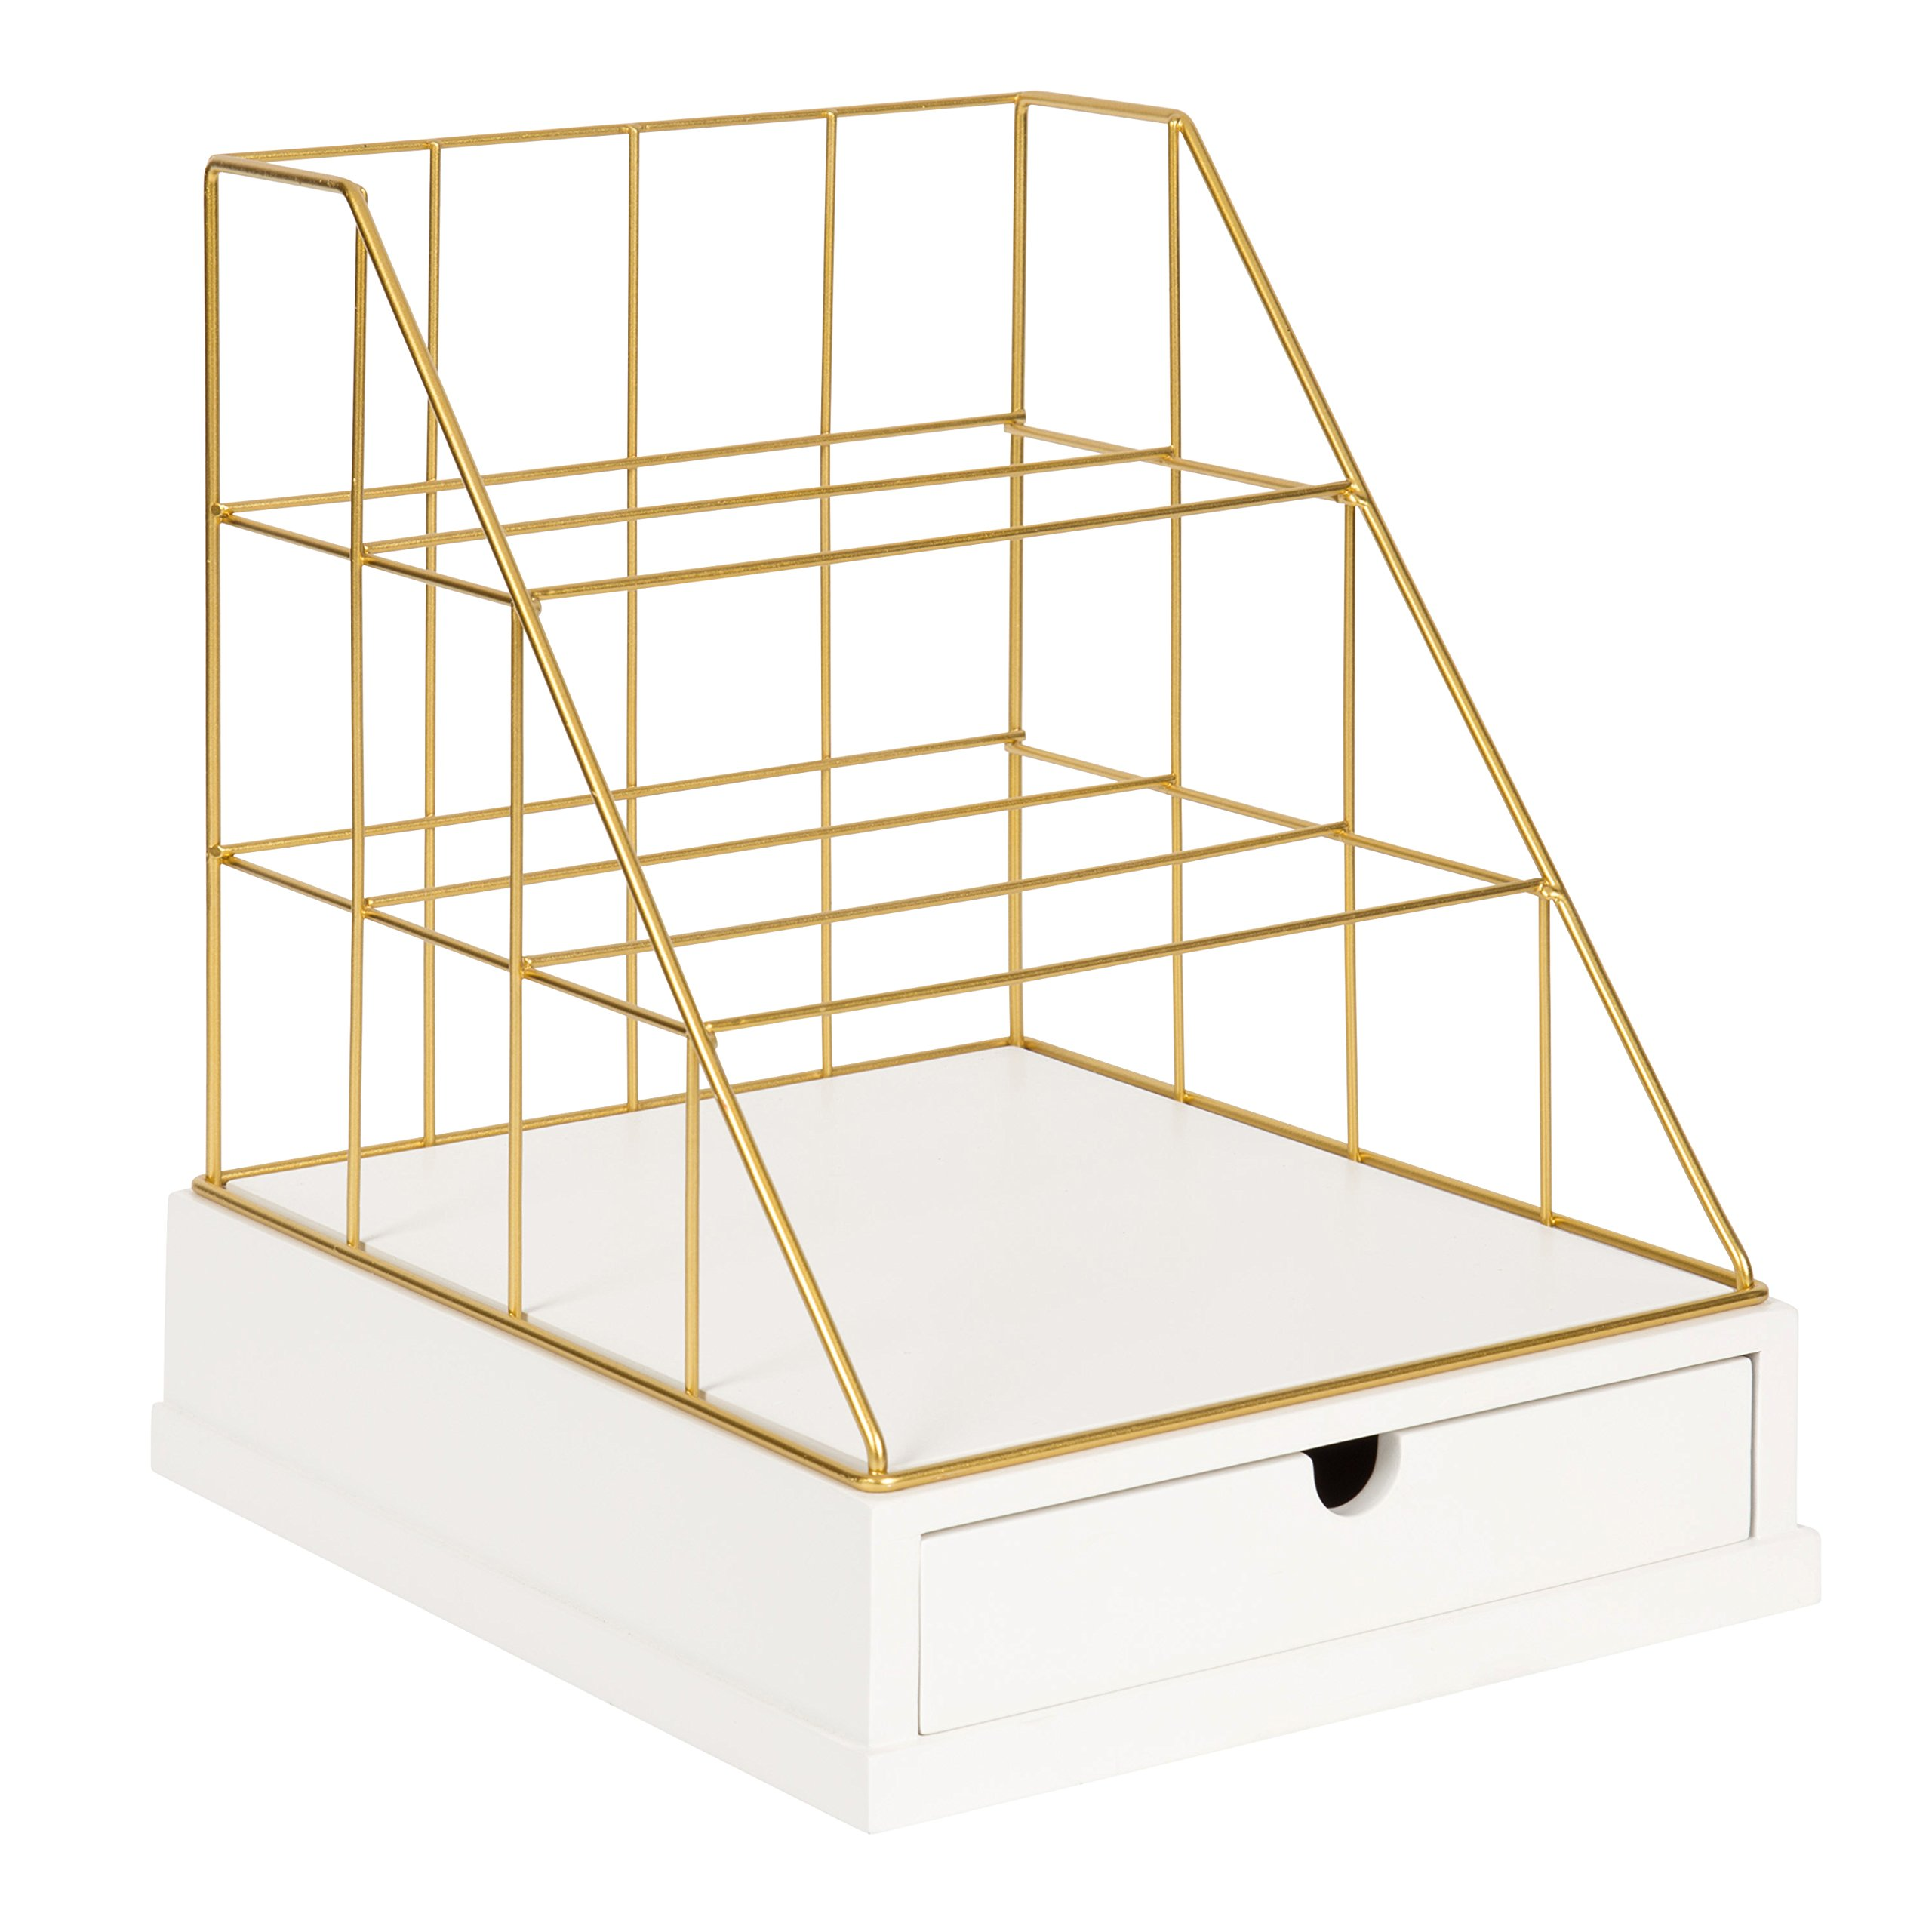 Kate and Laurel Benbrook Metal and Wood Letter Tray Desk Organizer, White and Gold by Kate and Laurel